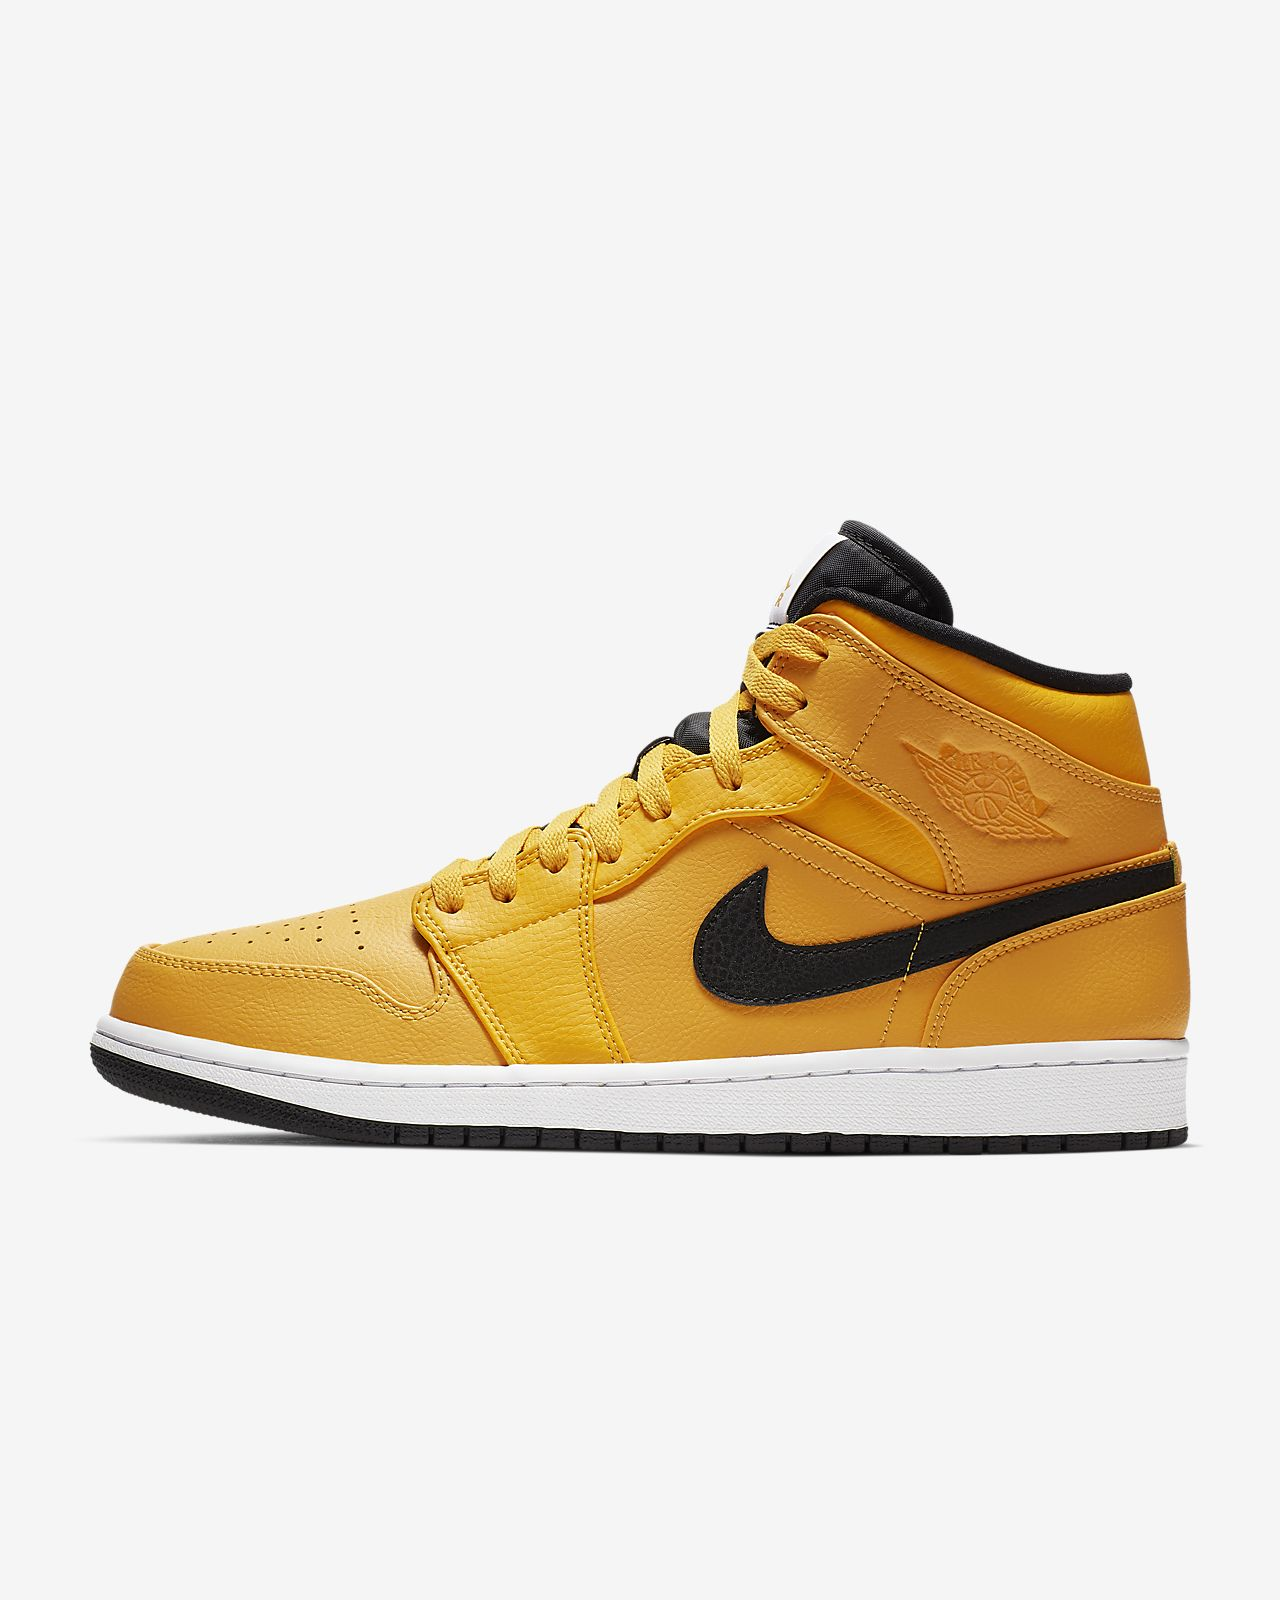 promo code 725d1 35381 Air Jordan 1 Mid Men's Shoe. Nike.com